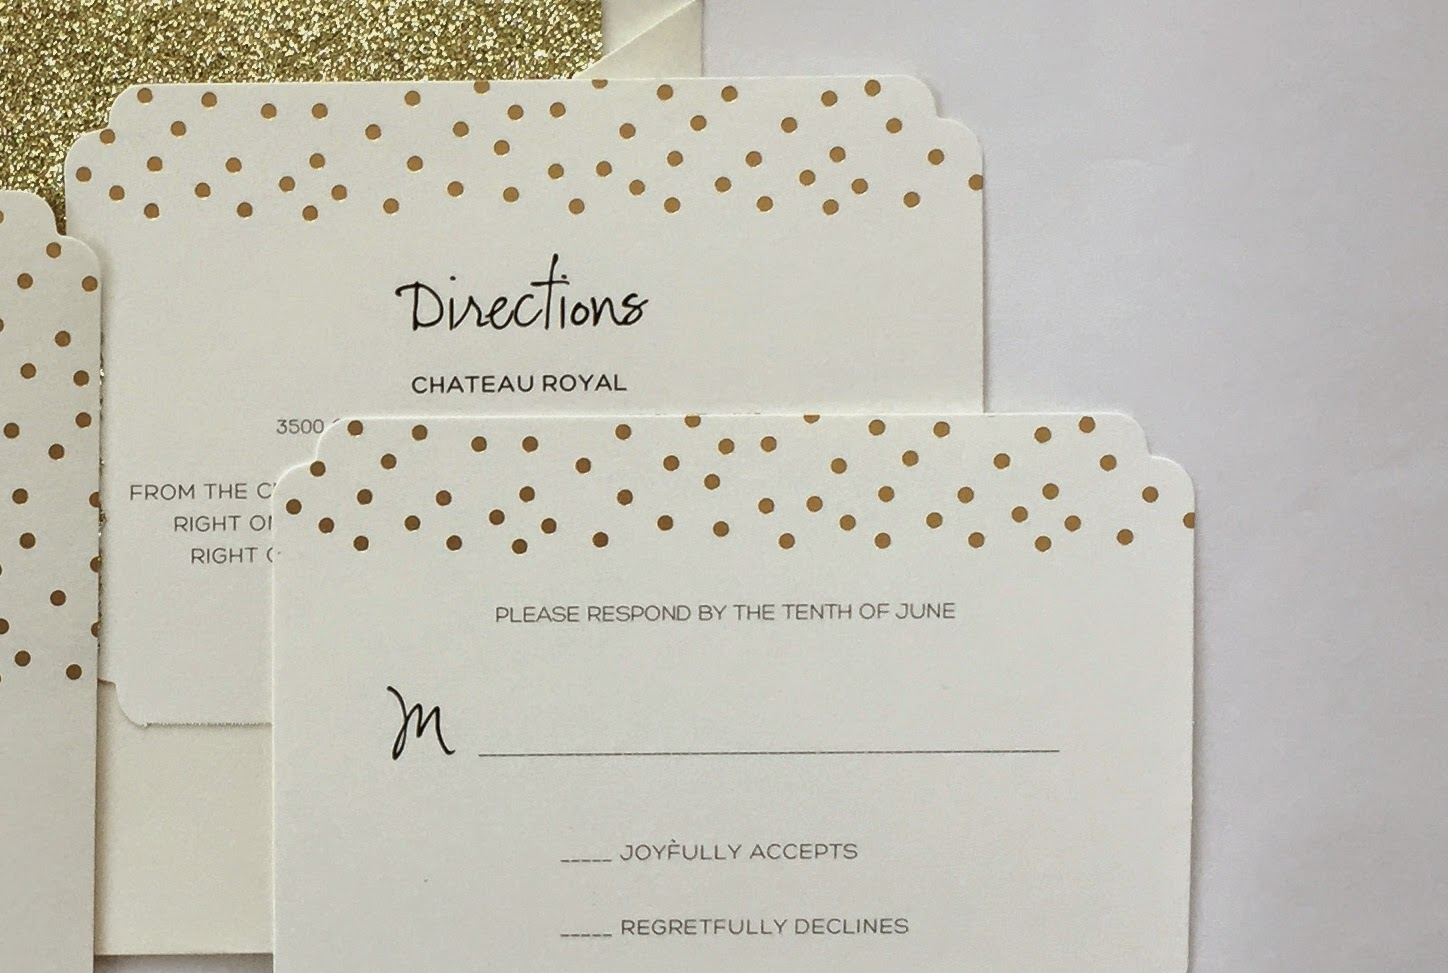 Brides Wedding Invitation Kits is one of our best ideas you might choose for invitation design